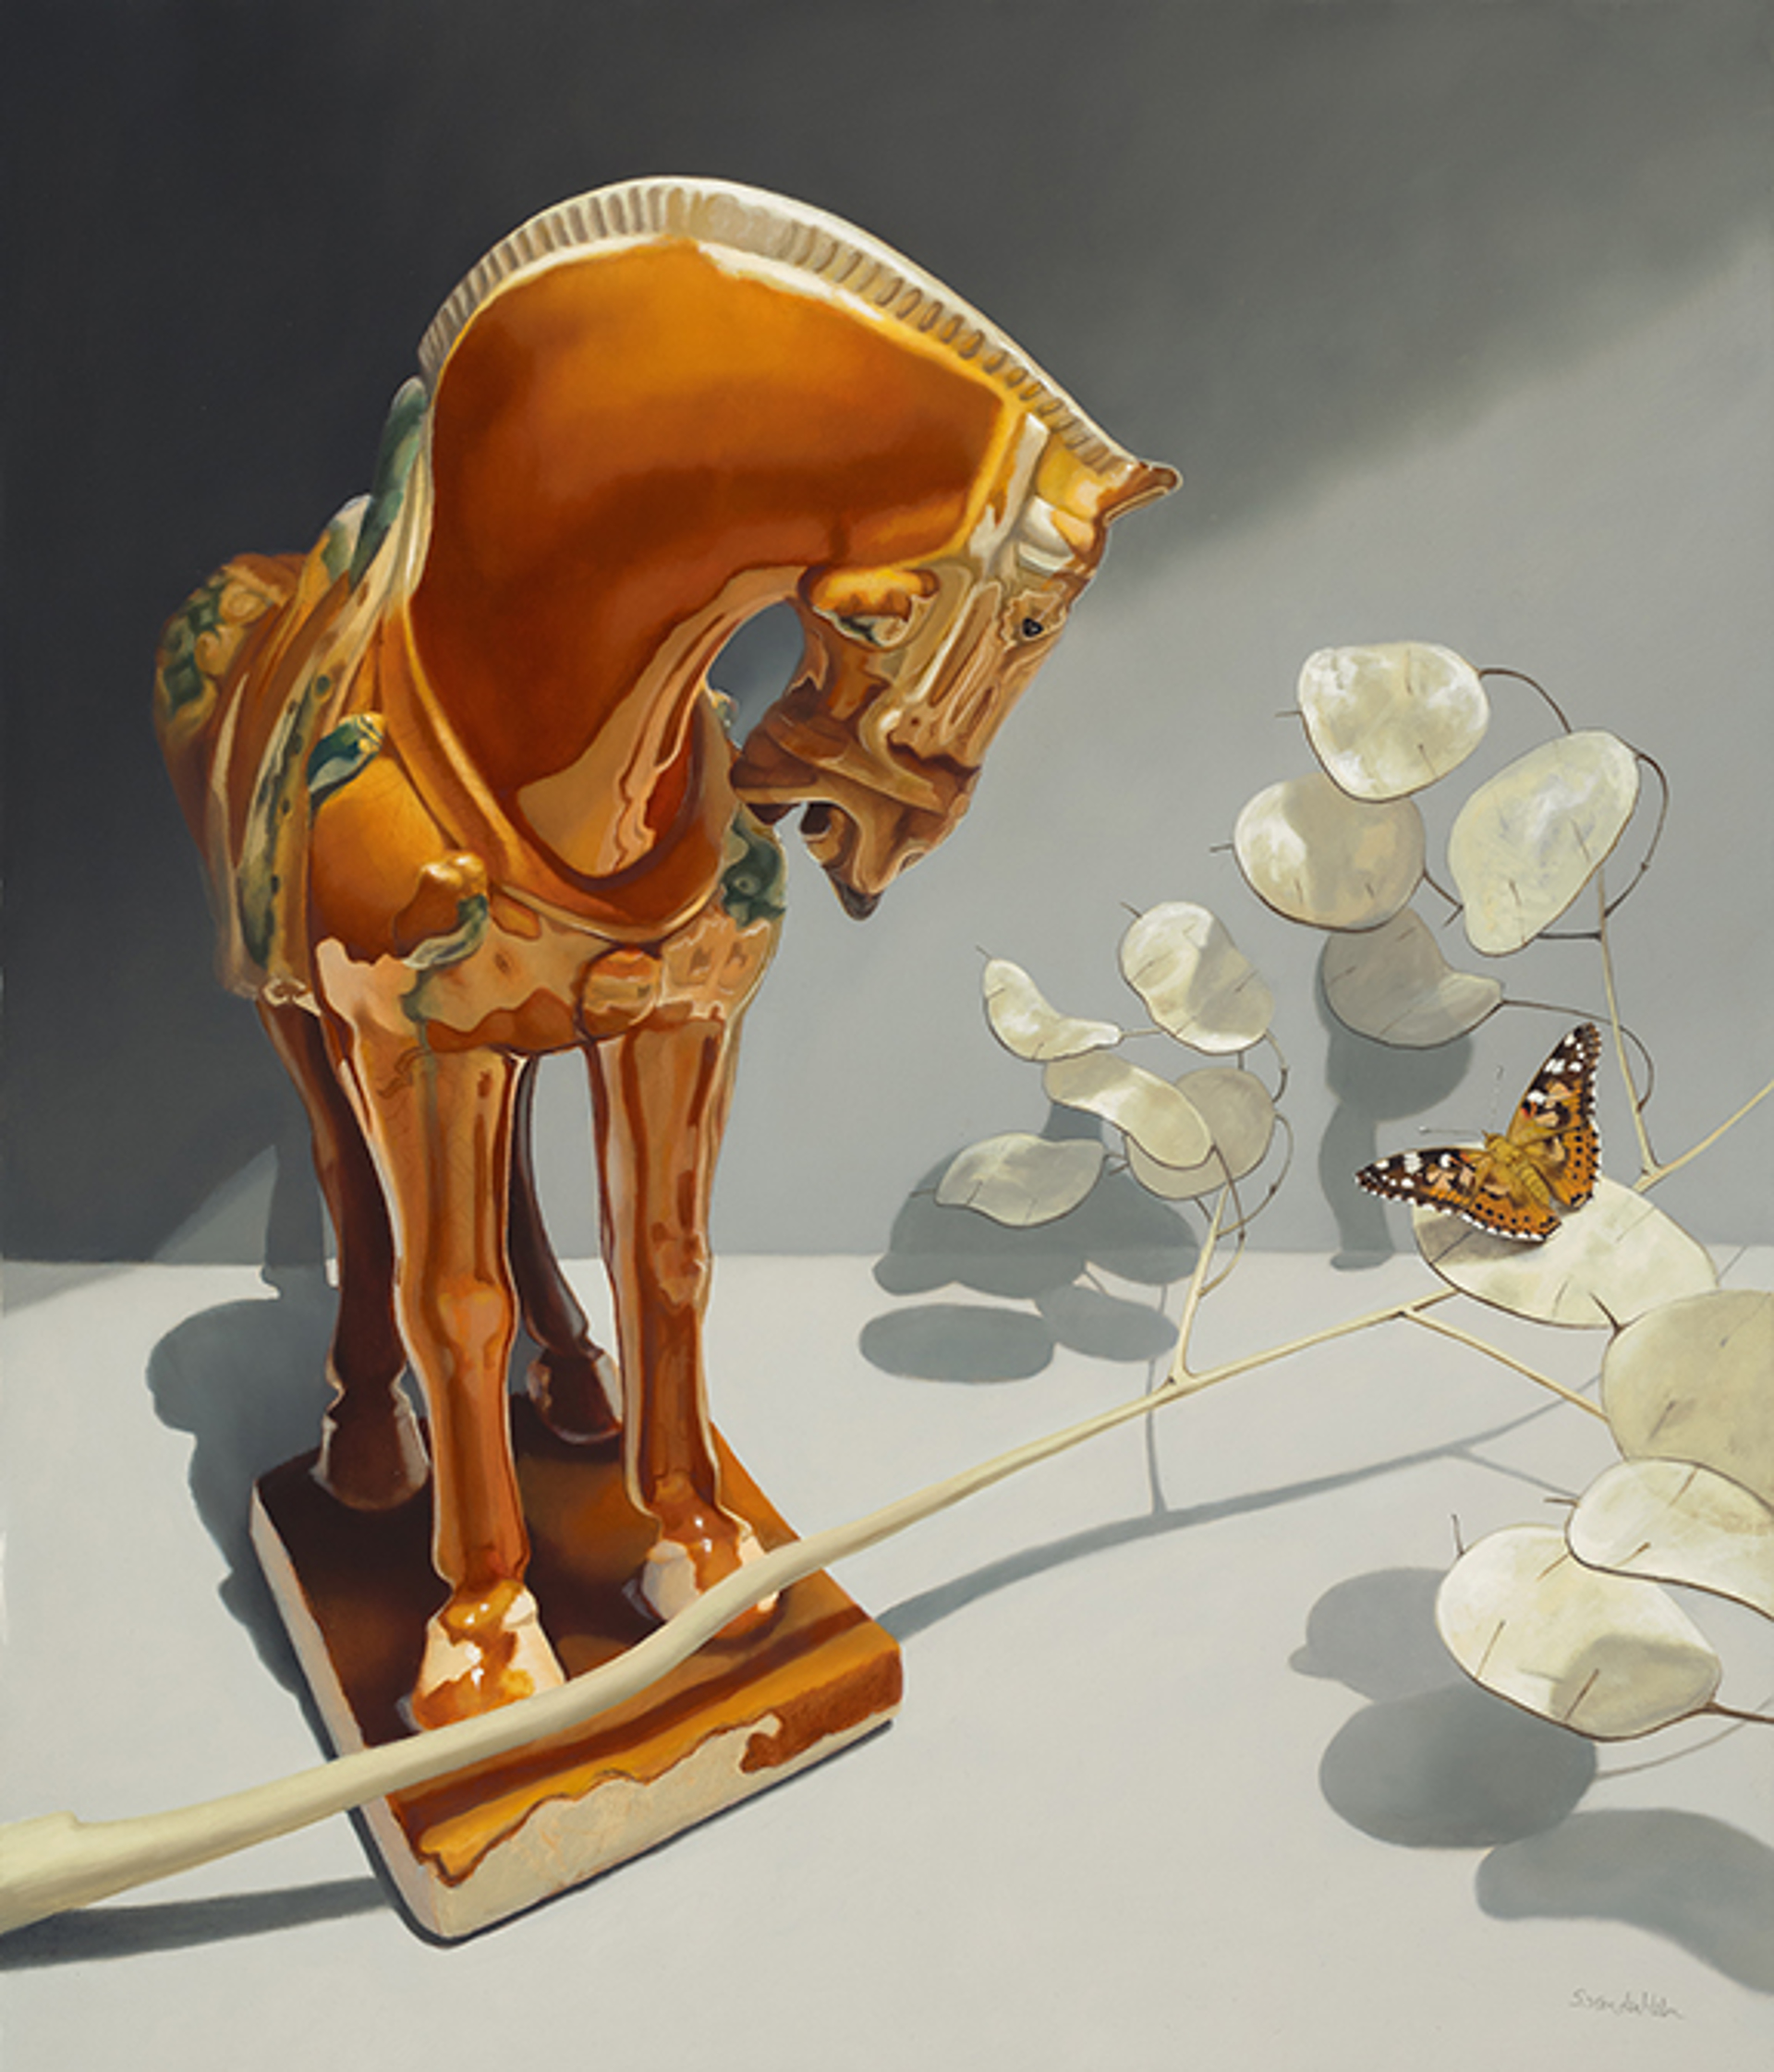 Dynasty Horse and Butterfly by Sarah van der Helm